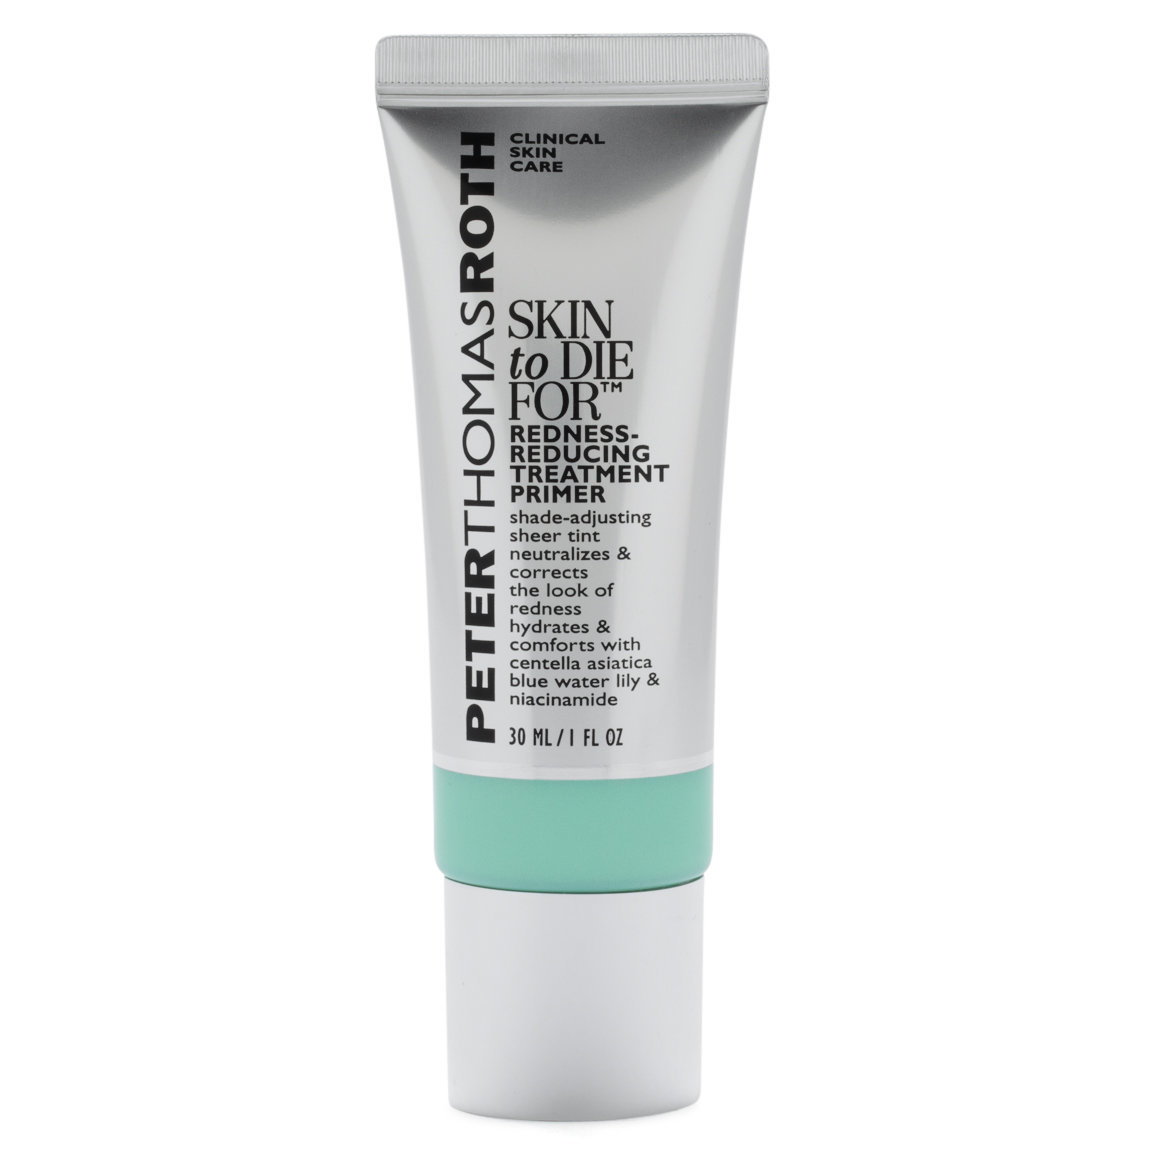 Peter Thomas Roth Skin To Die For Redness Reducing Treatment Primer alternative view 1 - product swatch.